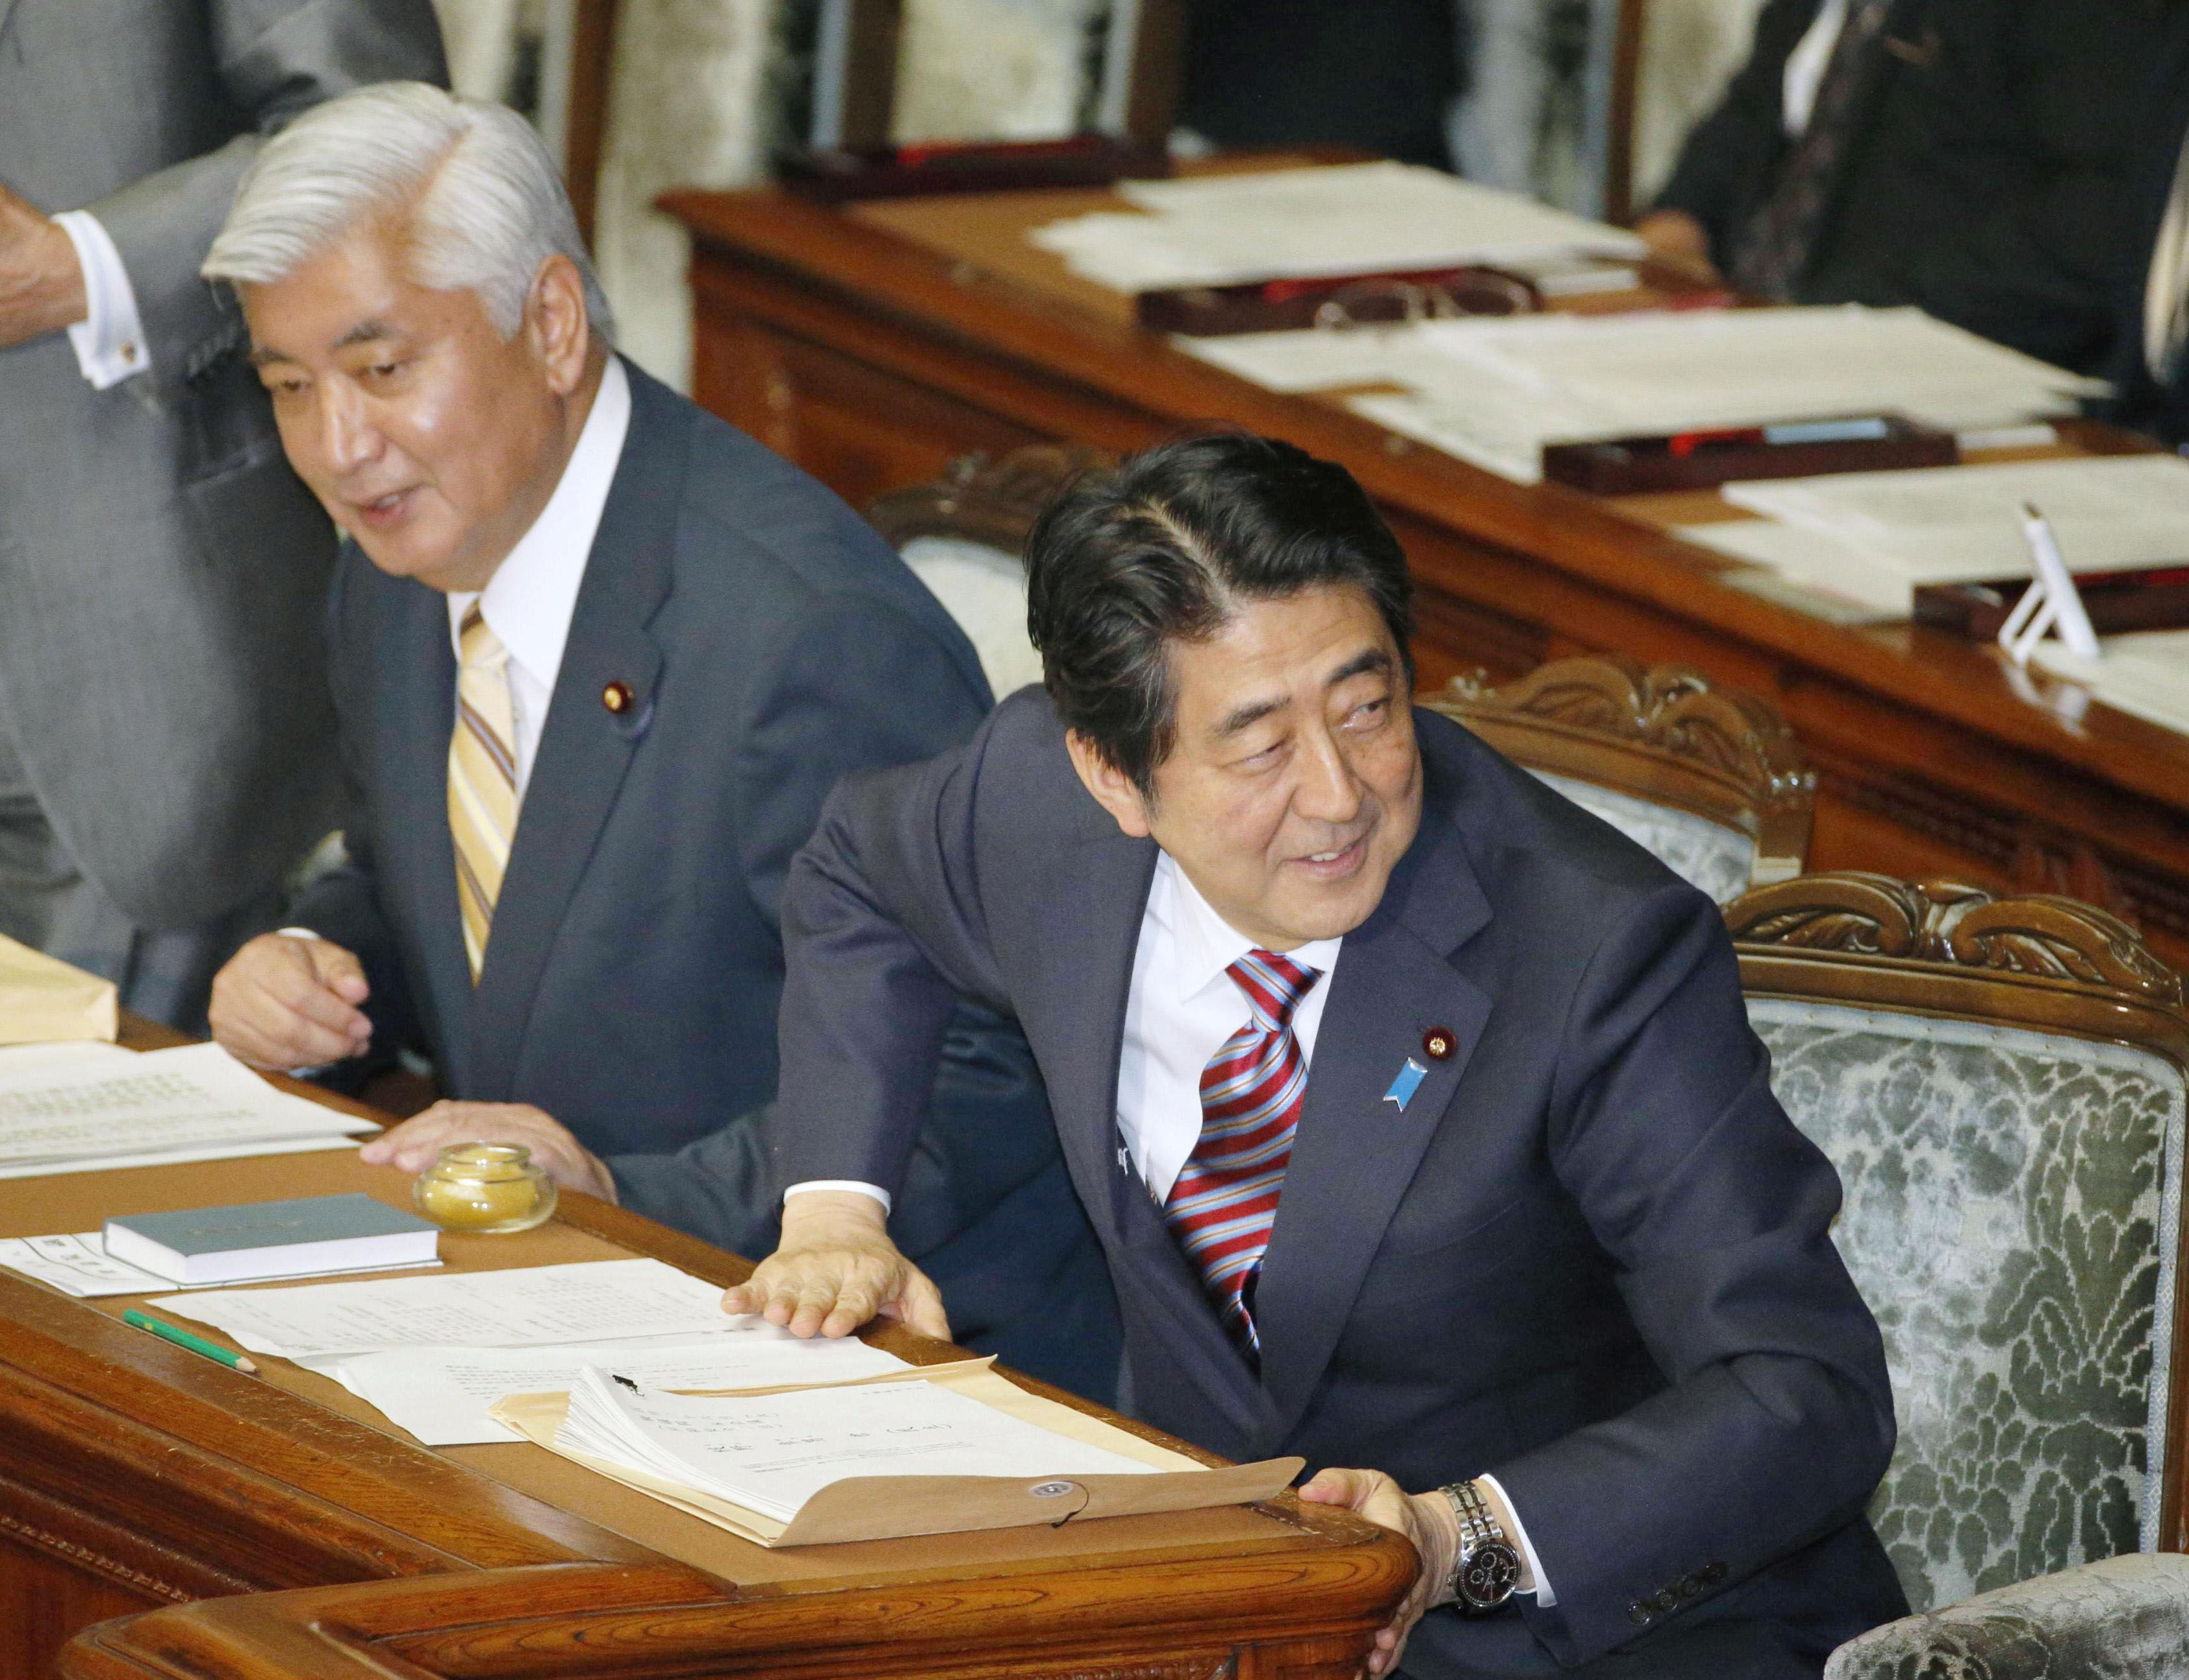 Prime Minister Shinzo Abe and Defense Minister Gen Nakatani attend a Lower House plenary session Tuesday. | KYODO